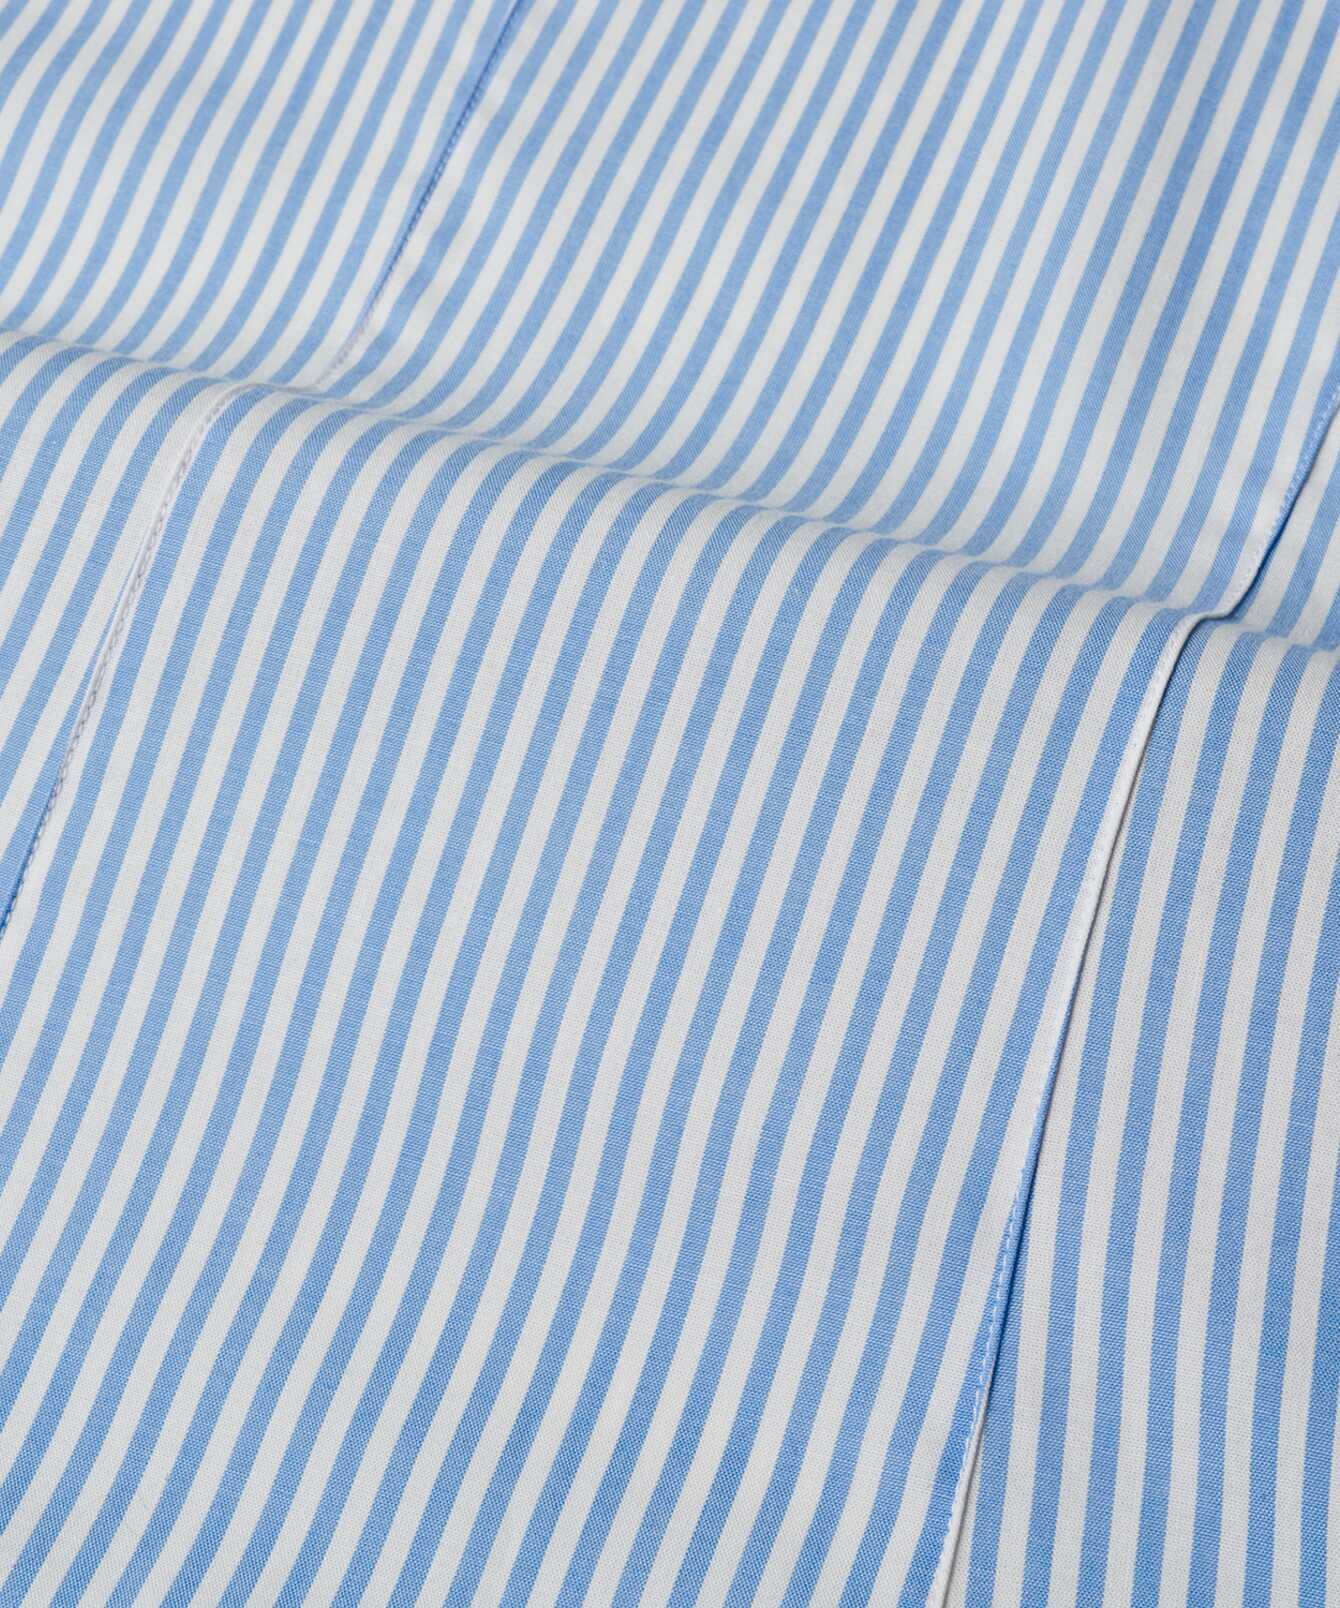 Shirt Nova Stripe The Shirt Factory